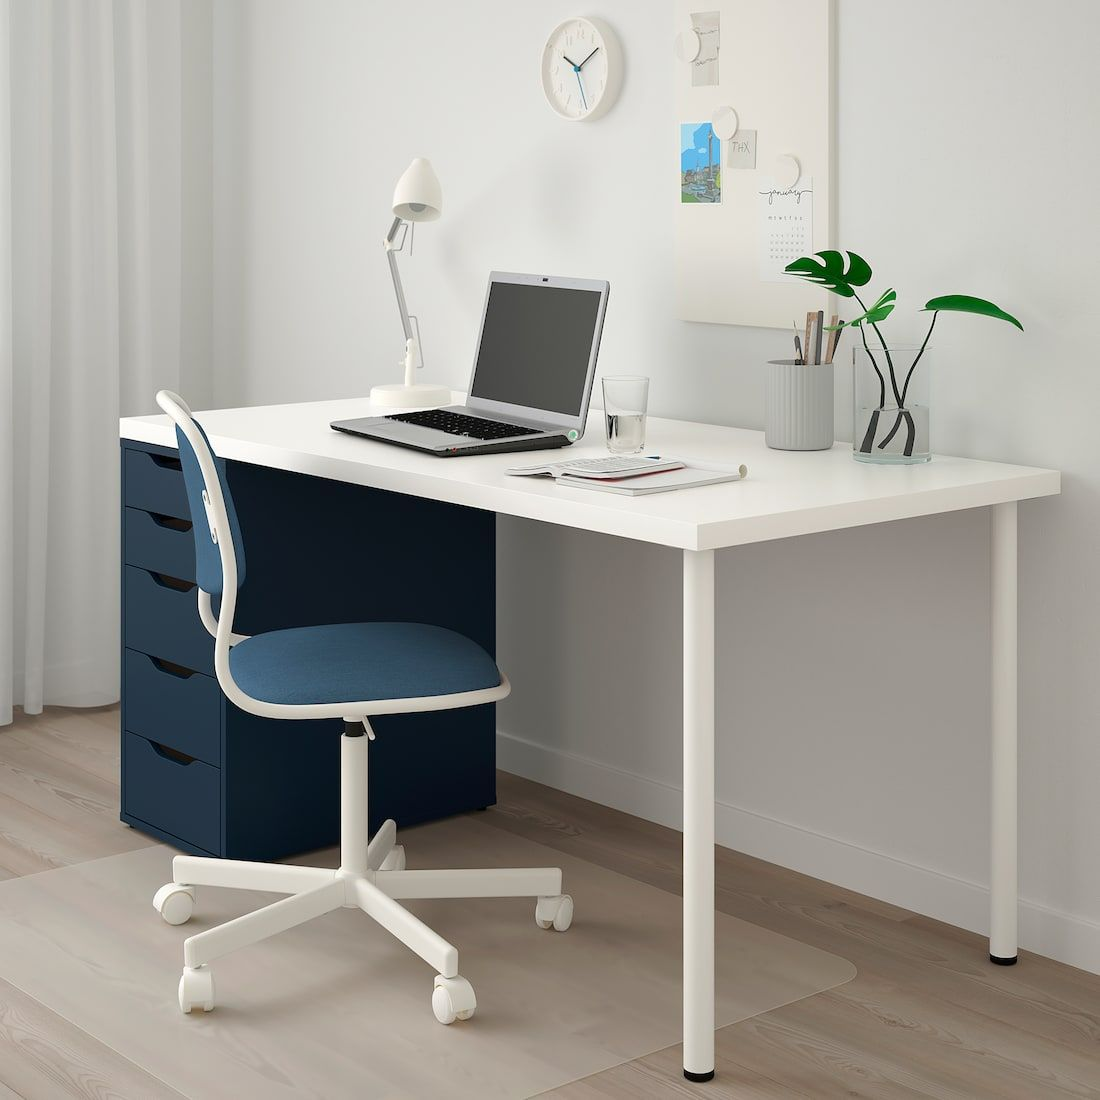 Linnmon Alex Table White Blue 59x29 1 2 Deco Chambre